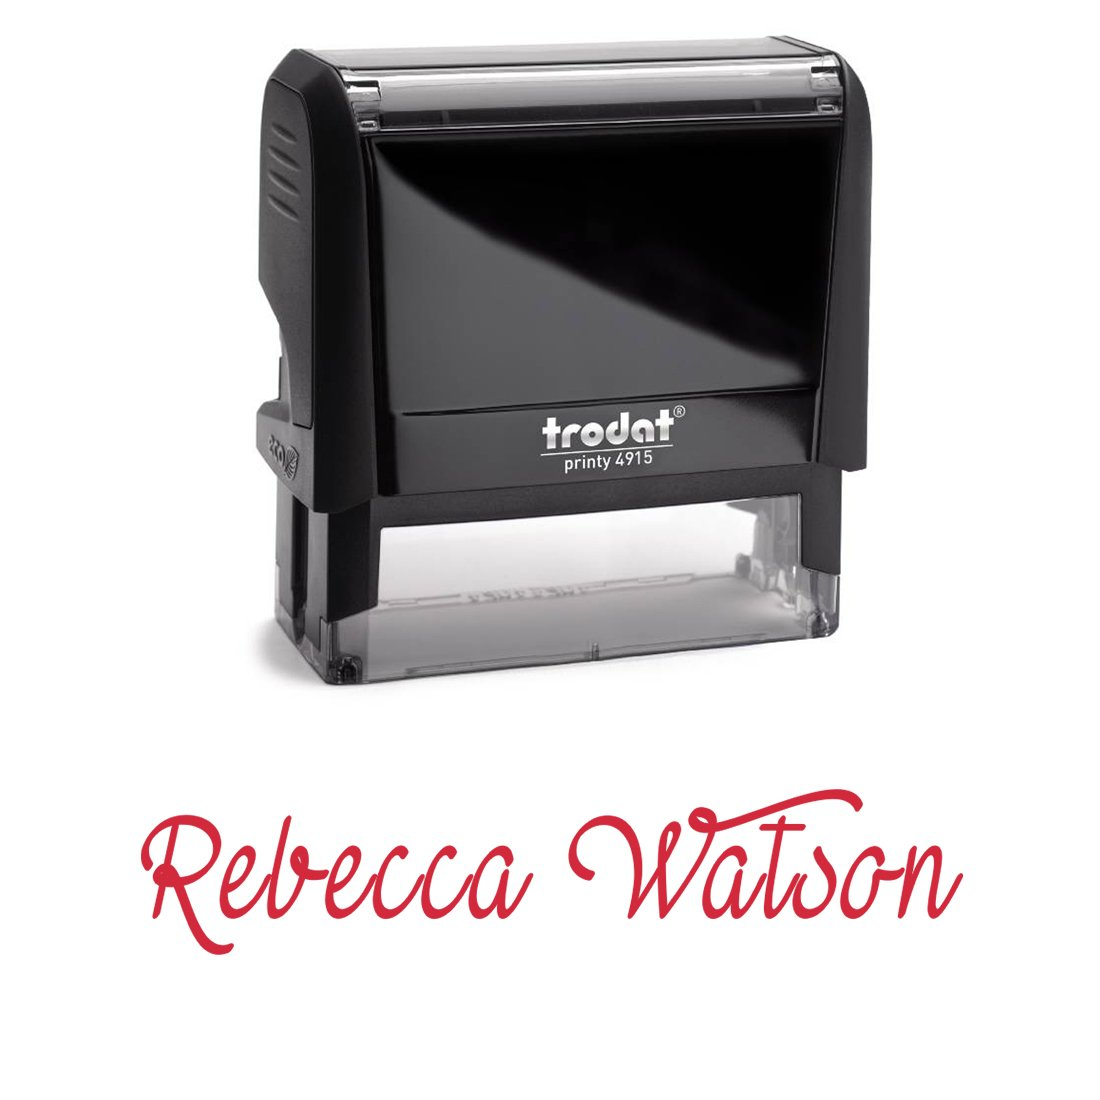 Personalized Custom Signature Stamp. Great Labelling Self Inking Stamp With Unique Font. Perfect For Bank Deposits, Registered Nurses, Home, Office Or School Red Ink, Self Inking Stamp